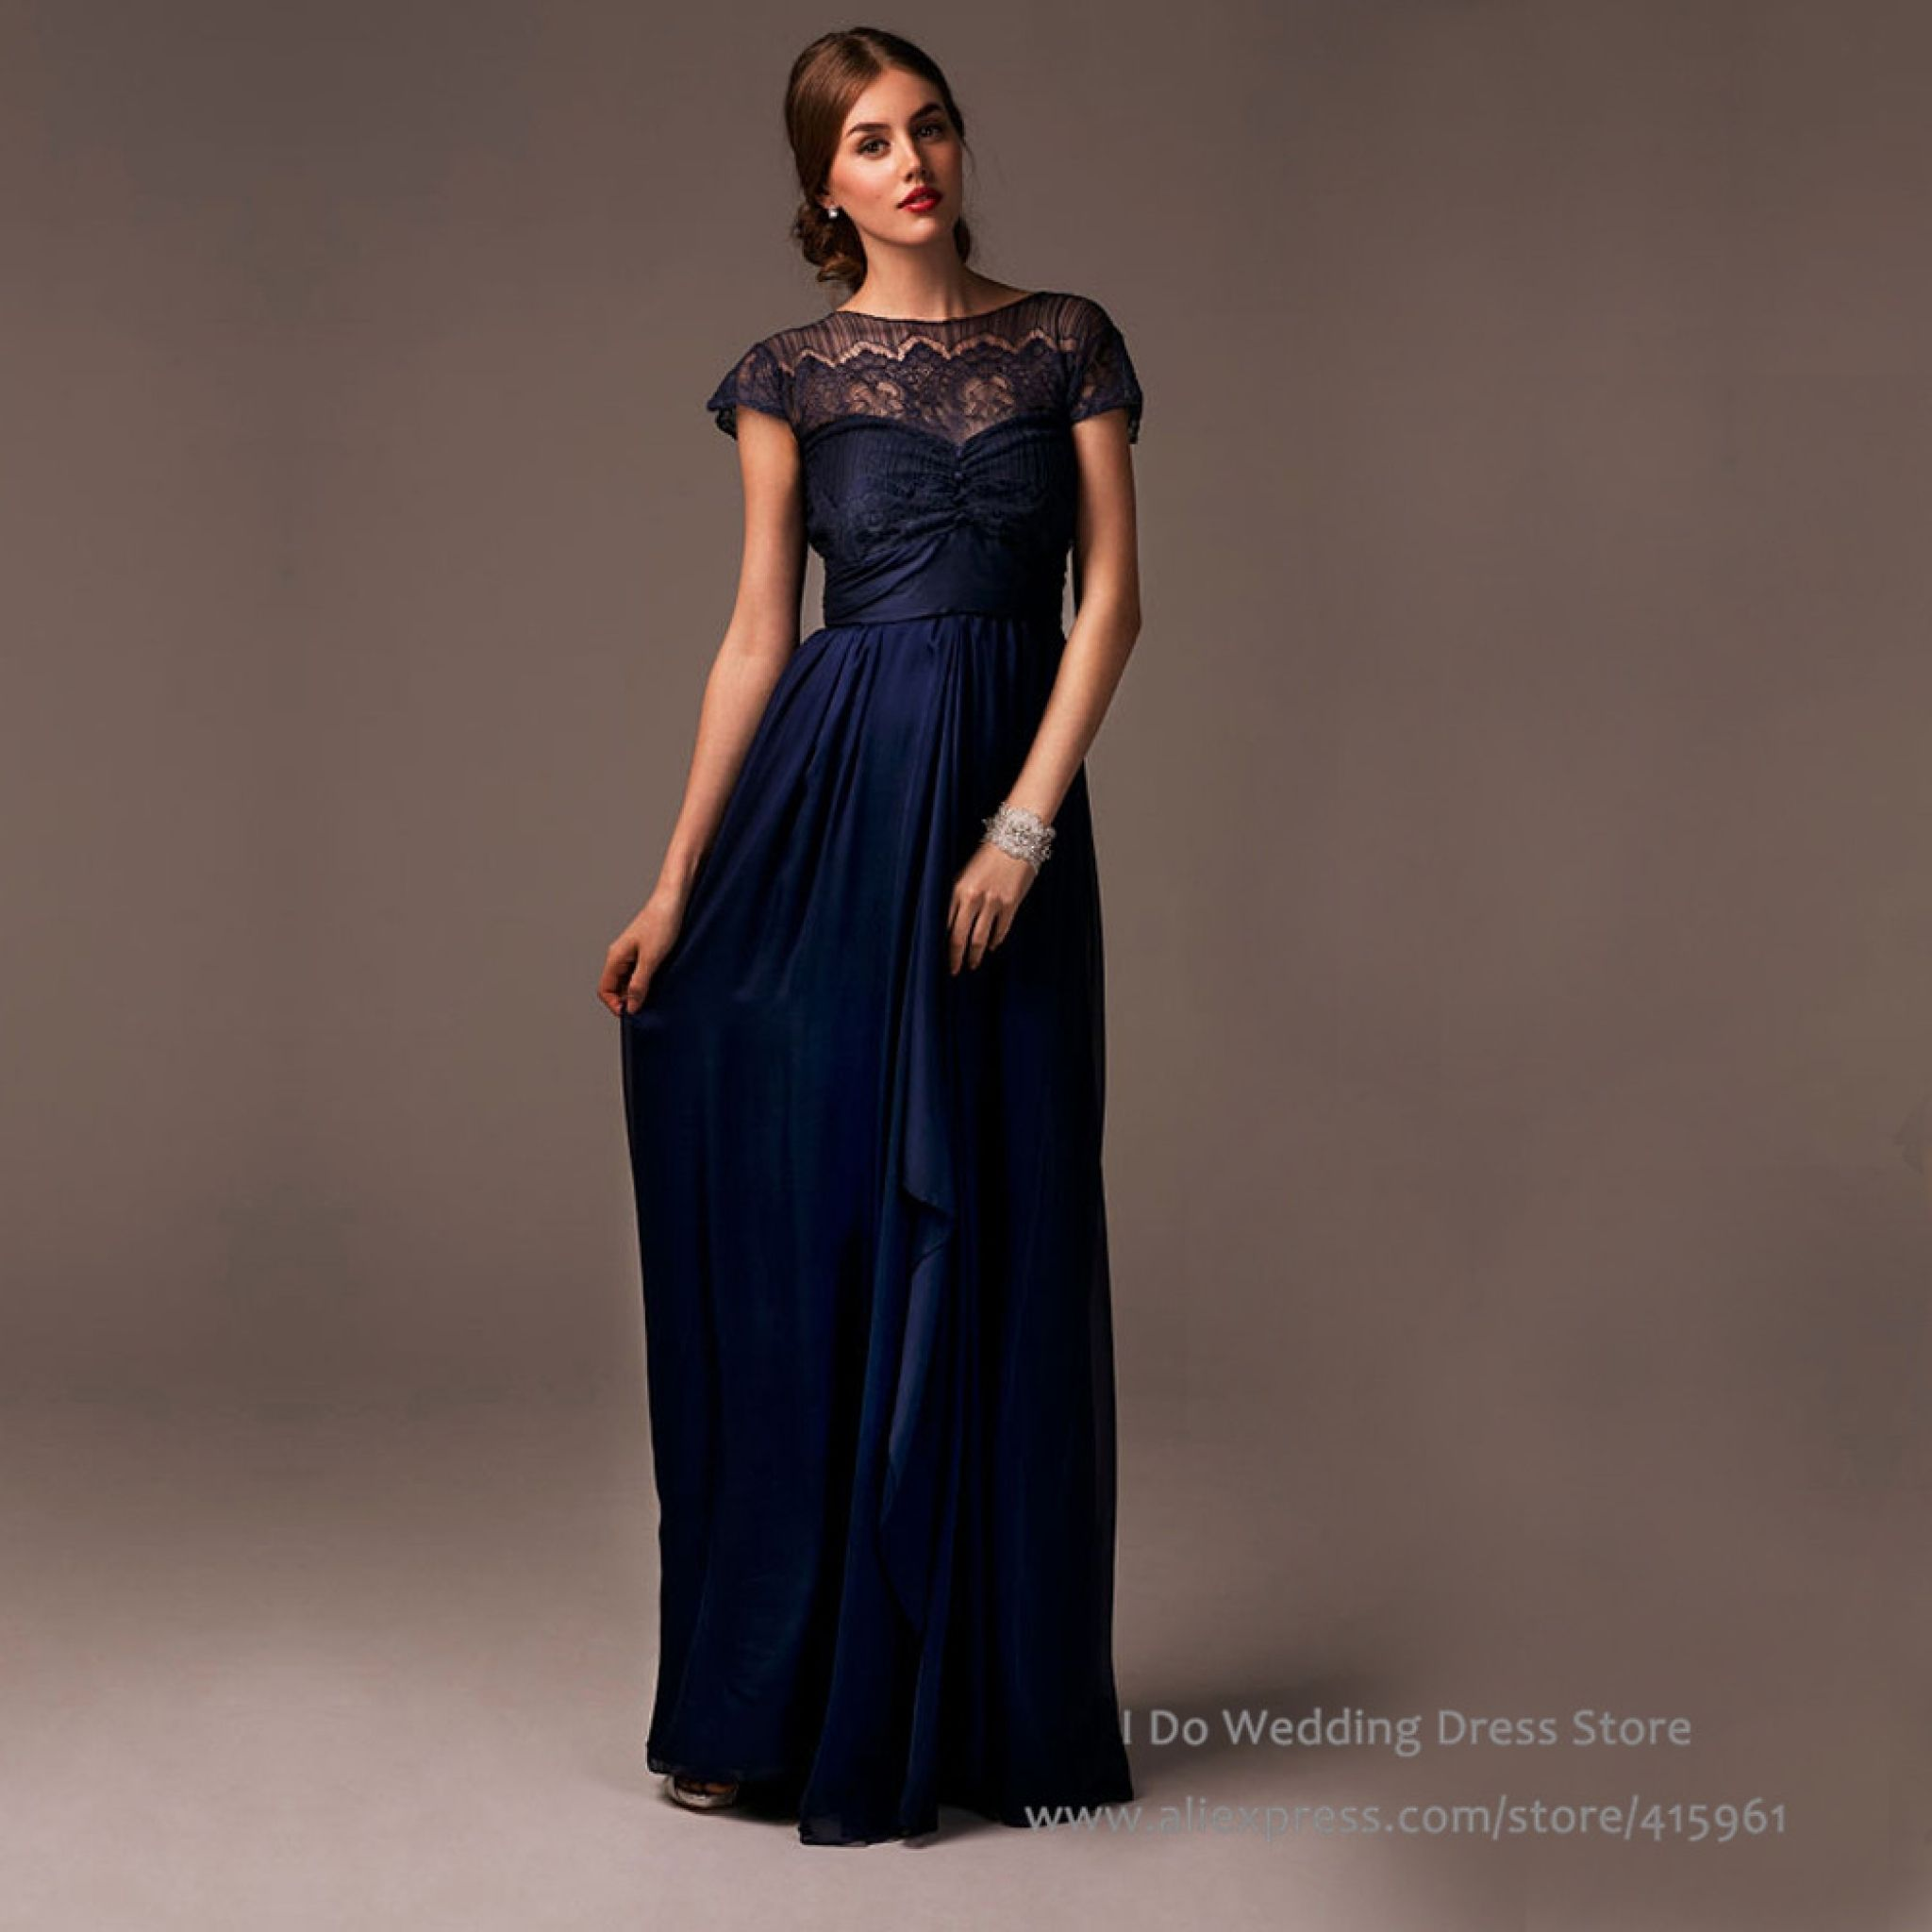 navy blue dress for wedding - dress for country wedding guest Check ...